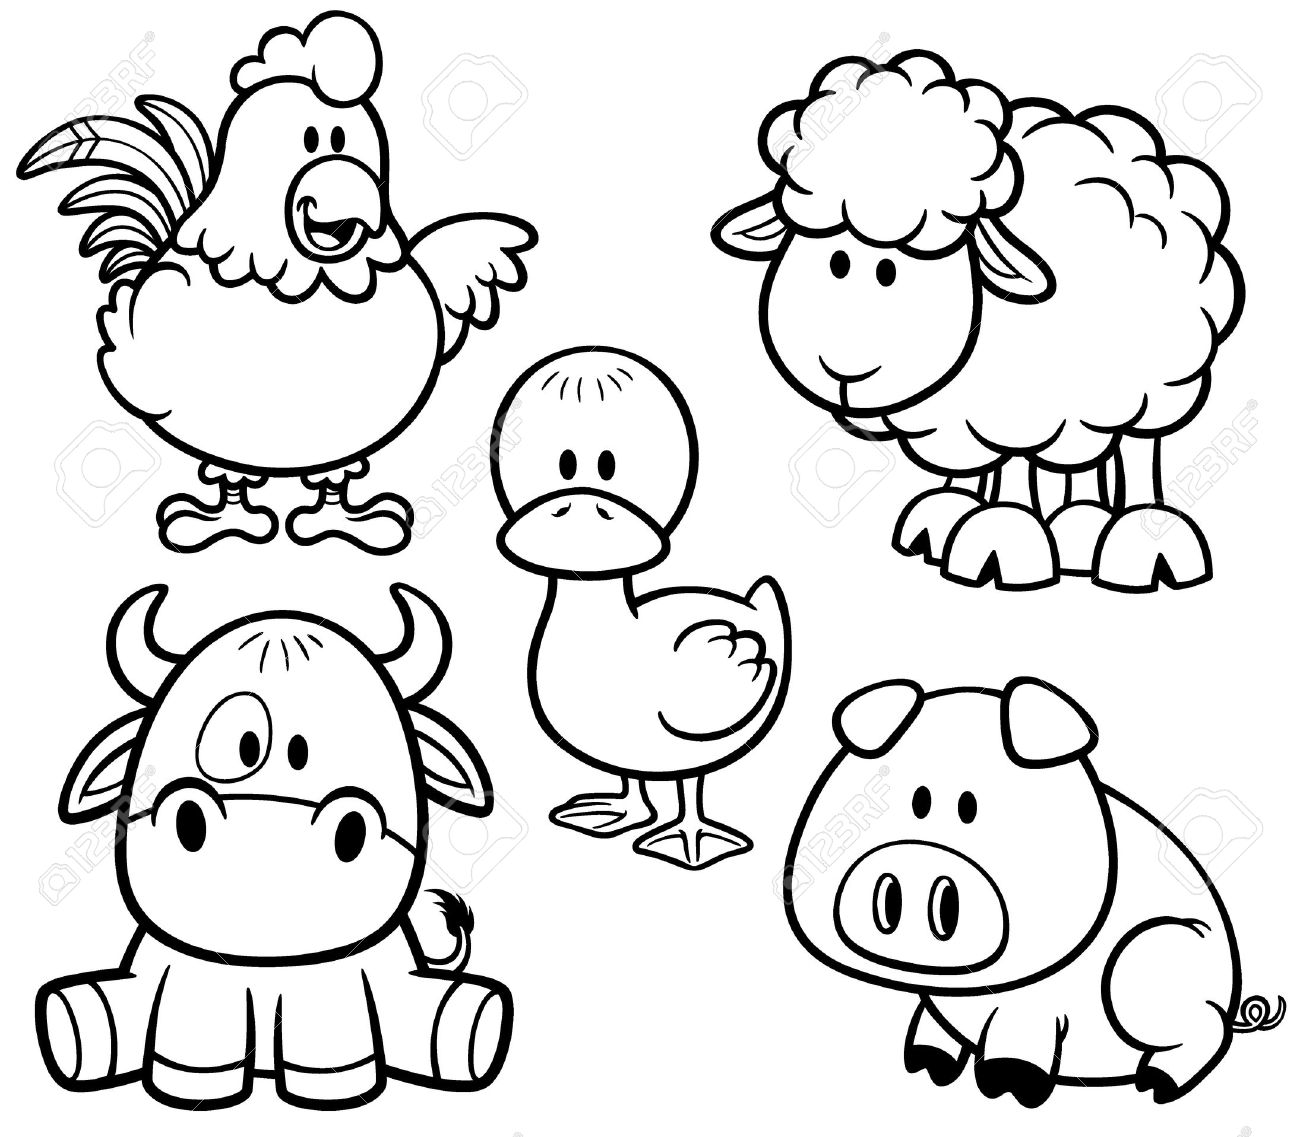 baby animals colouring pages cute baby farm animal coloring pages best coloring pages pages colouring baby animals